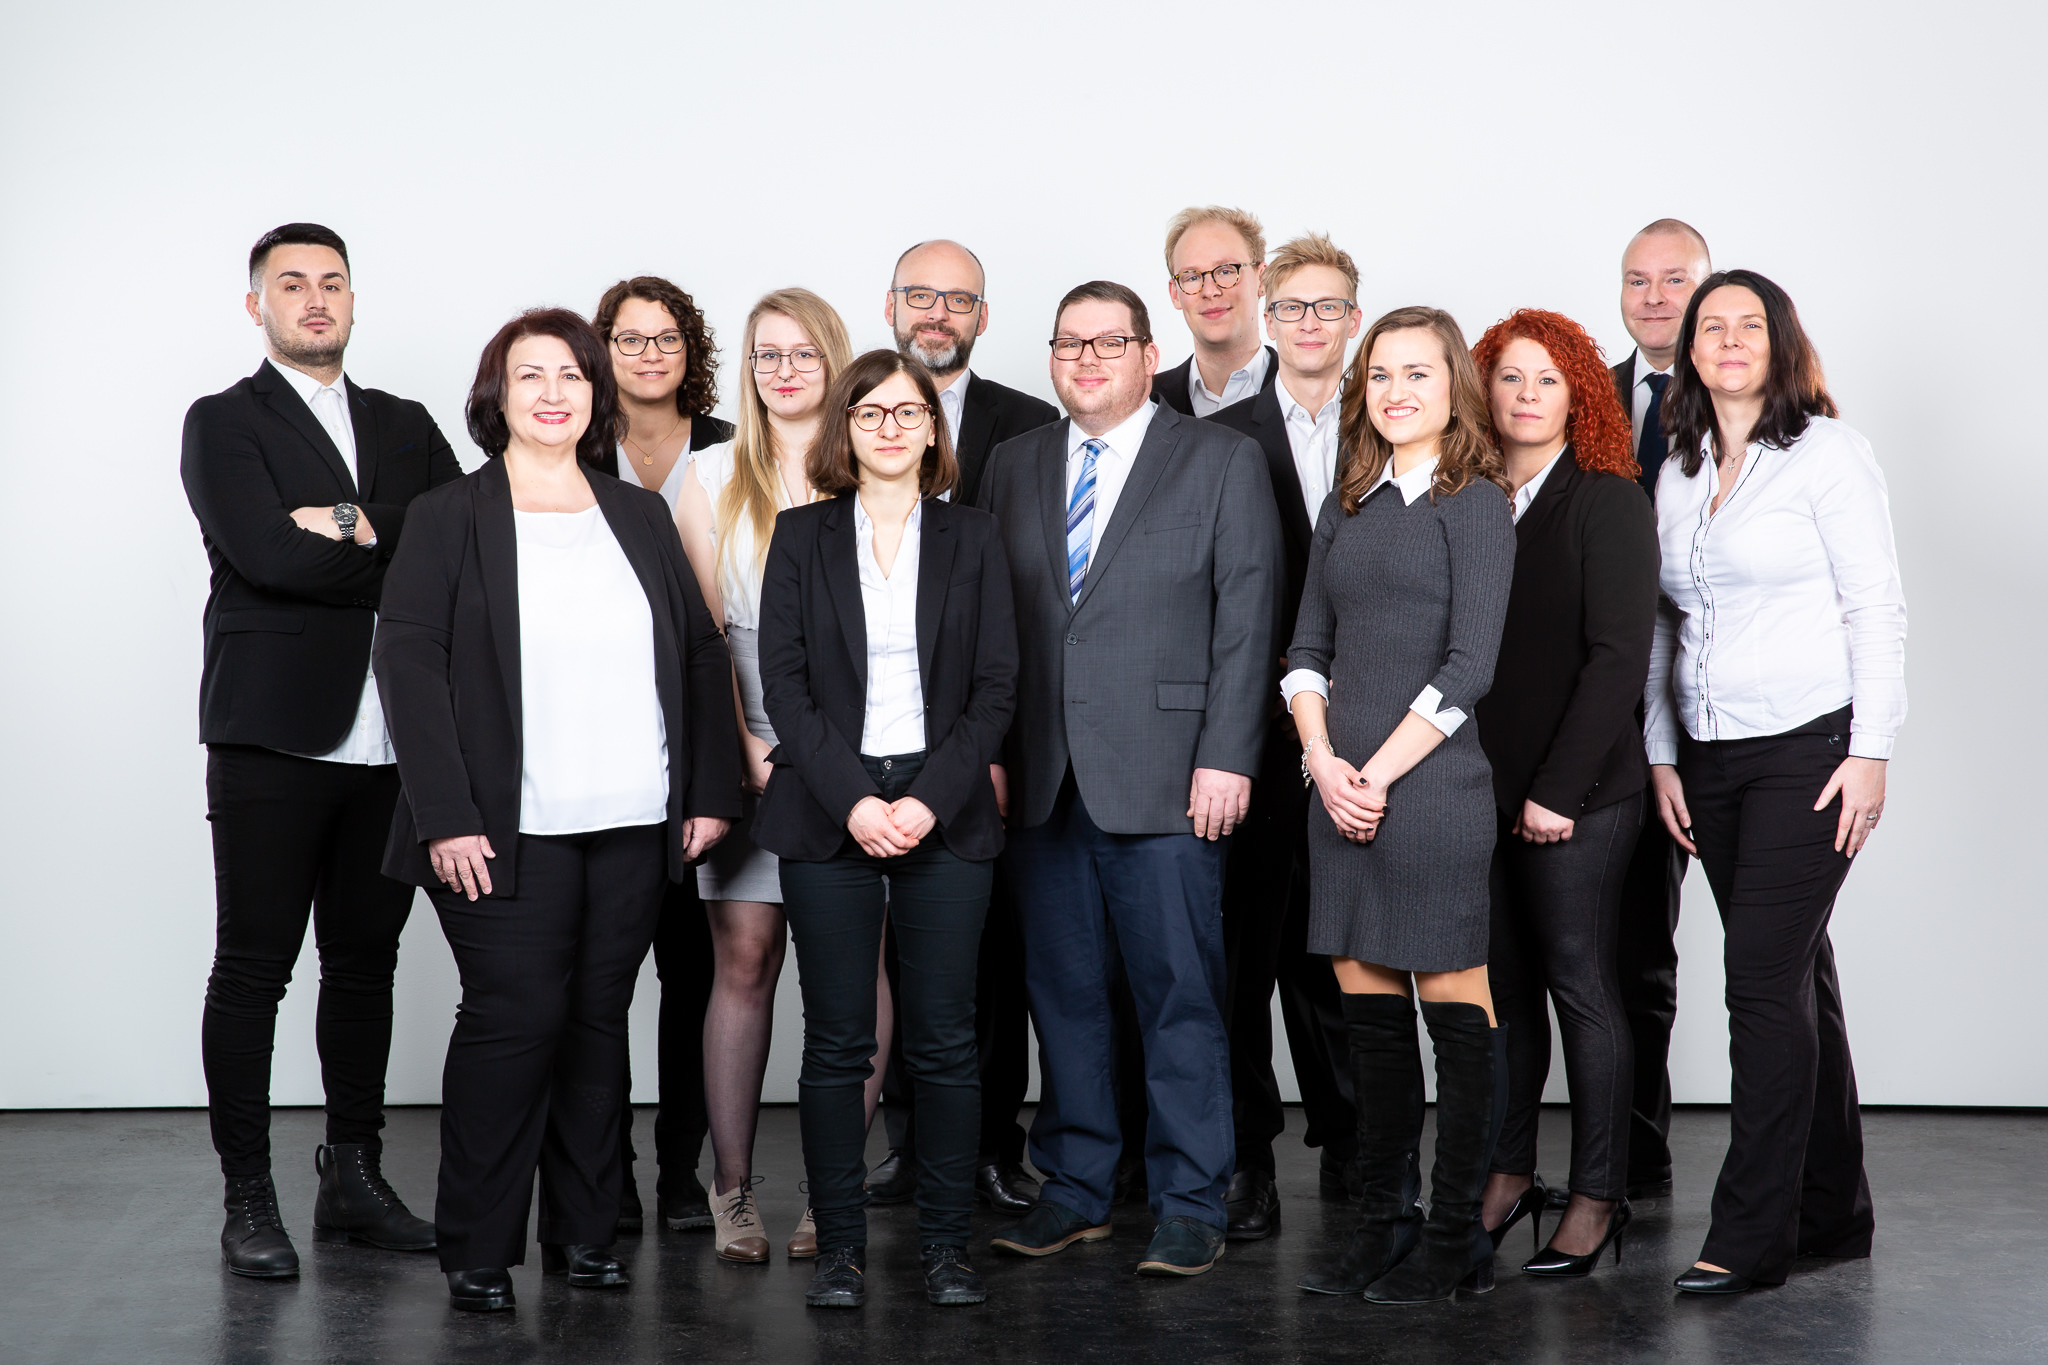 Gruppenfoto der Firma Together CCA